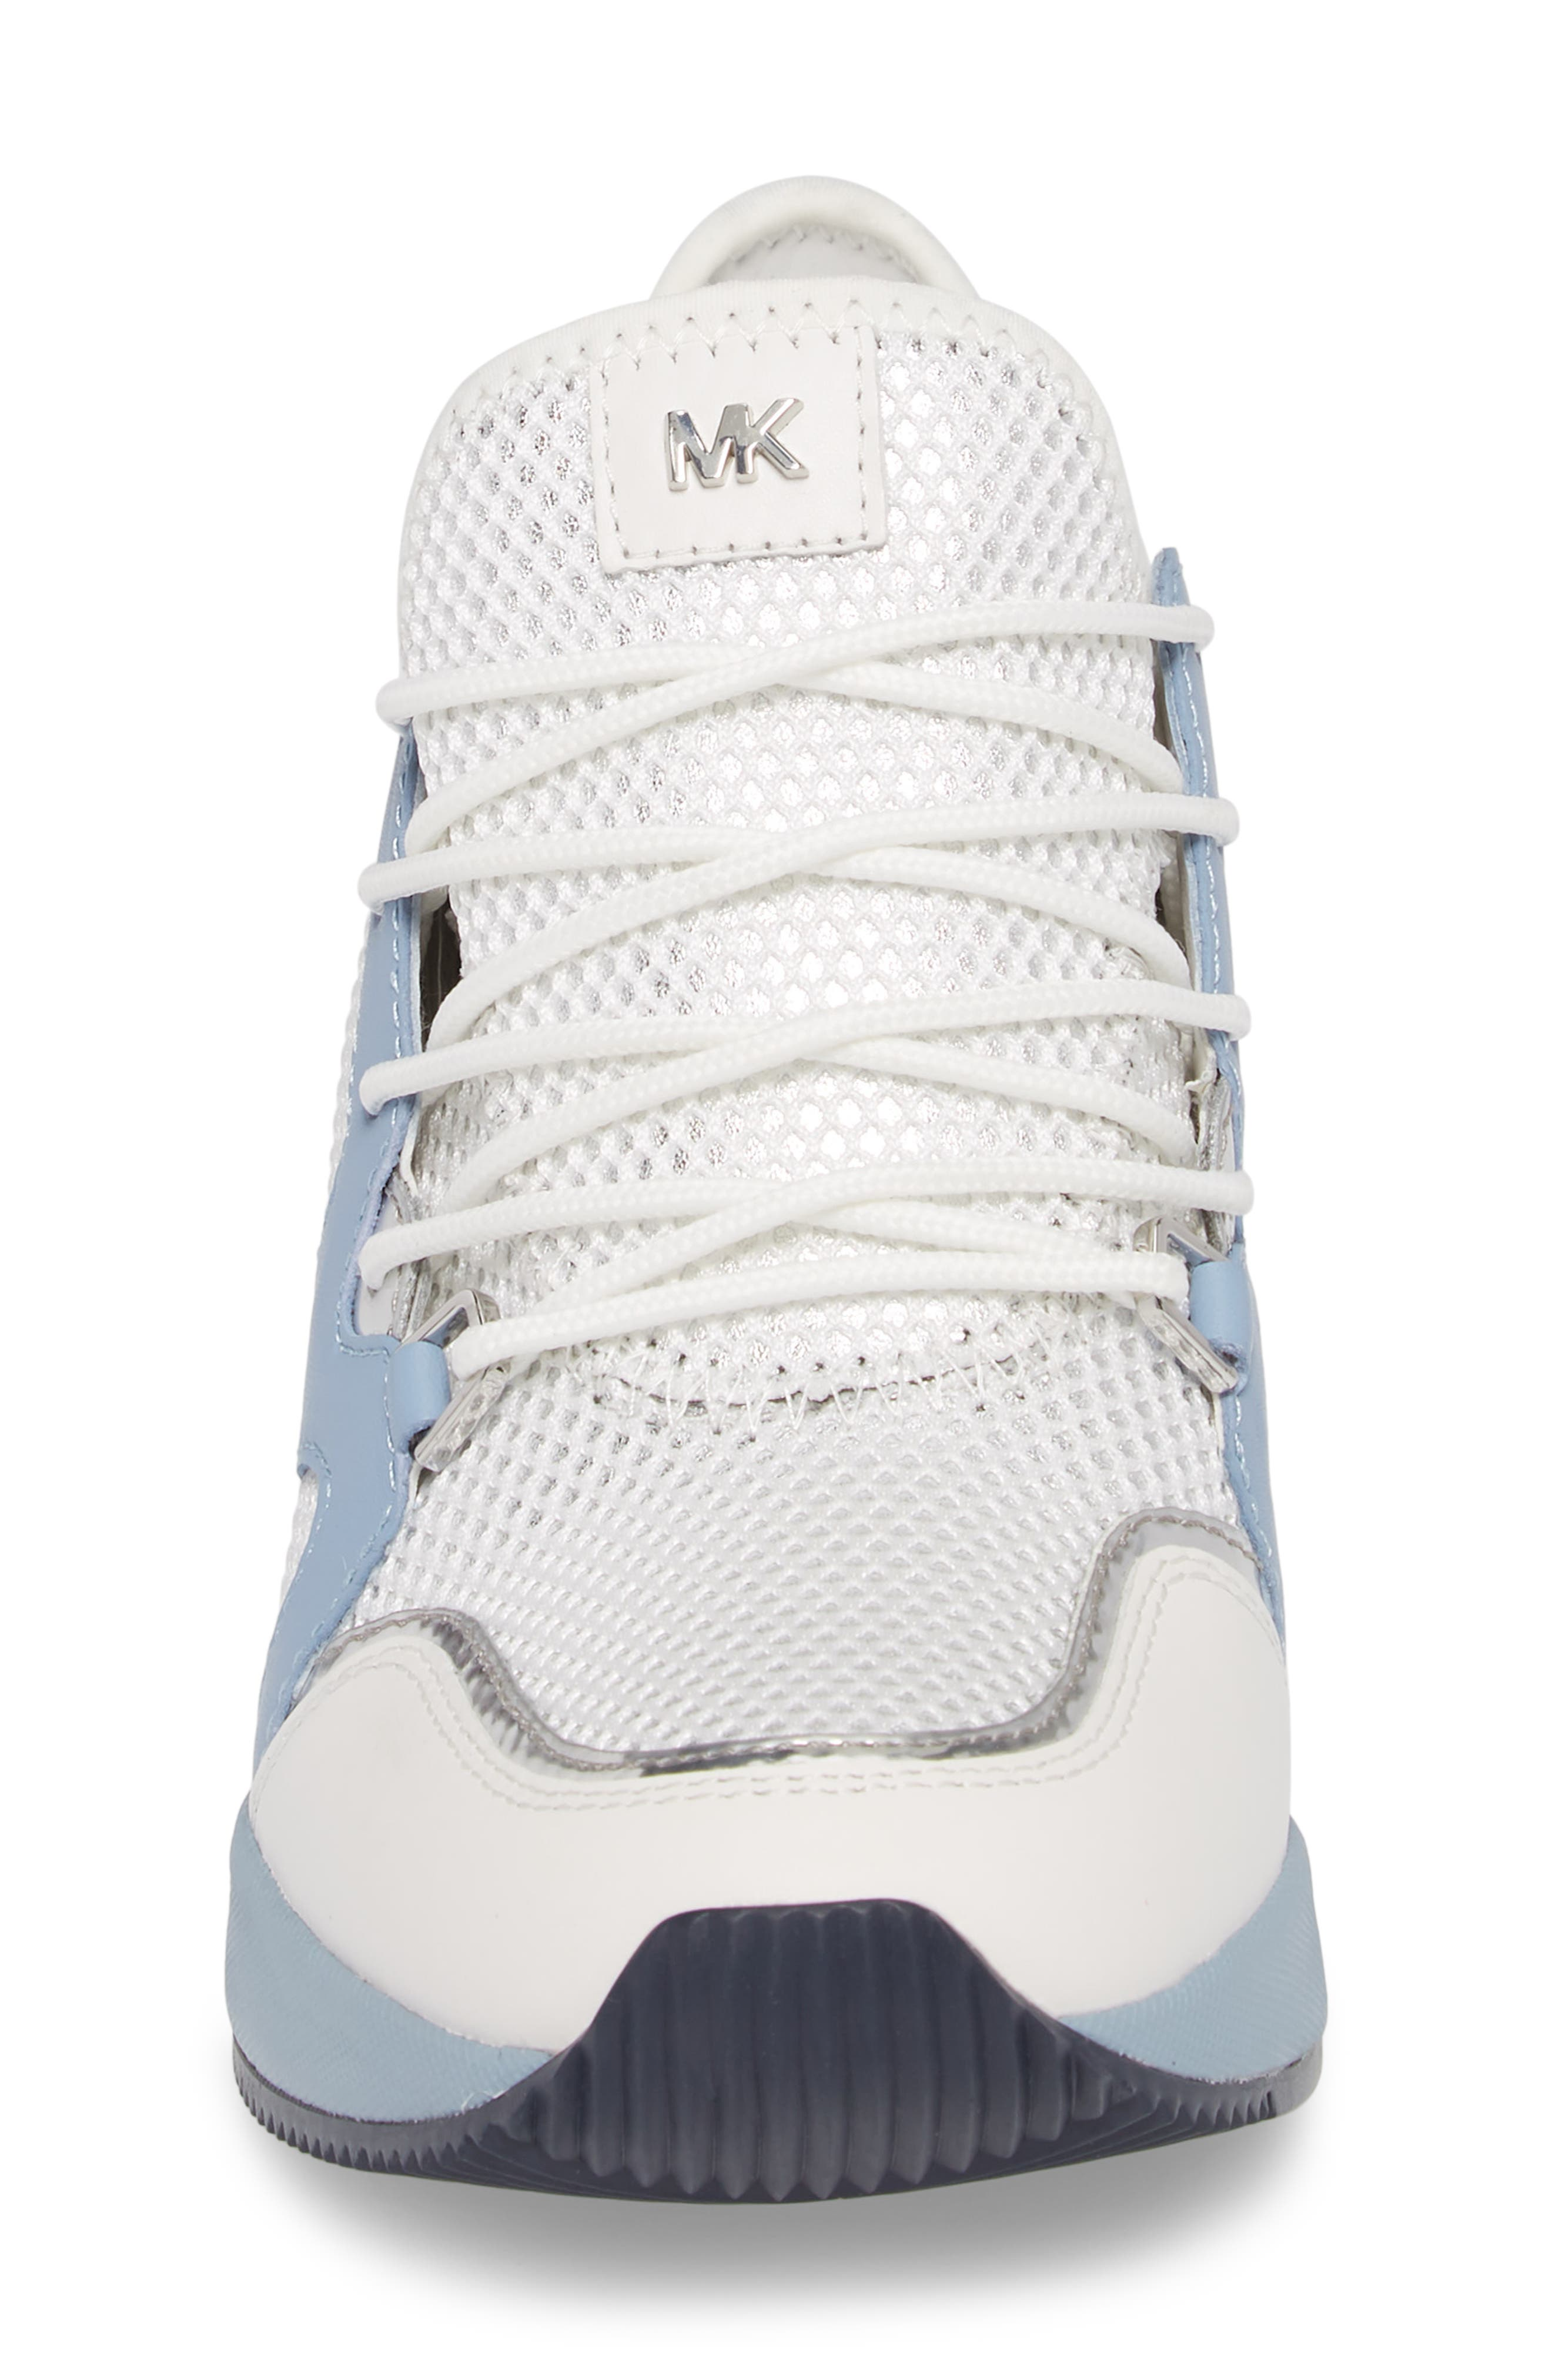 Scout Wedge Sneaker,                             Alternate thumbnail 4, color,                             429